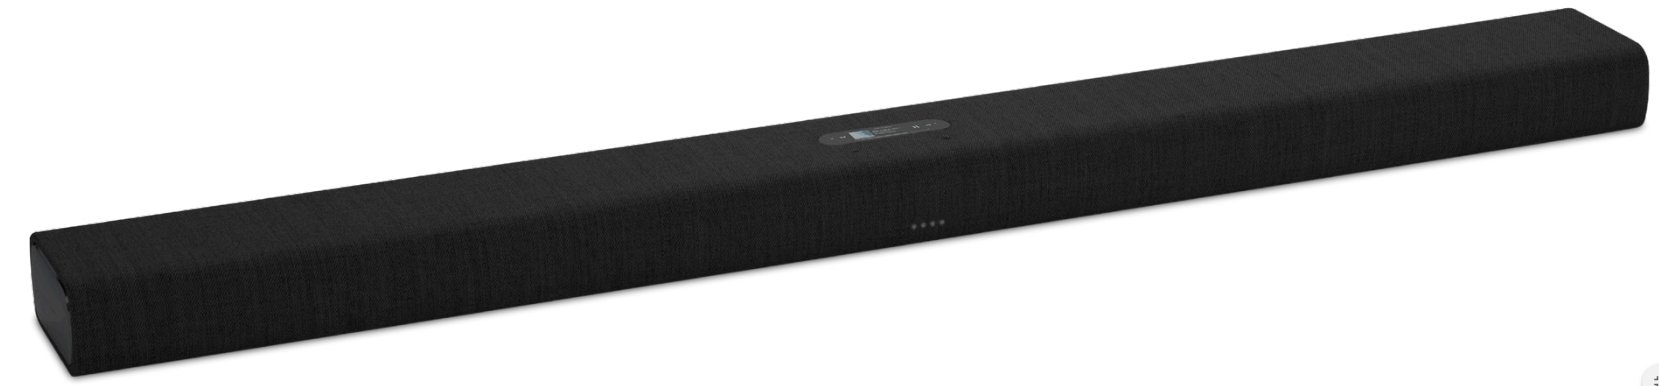 Harman/Kardon Citation Bar Soundbar 5.1 Surround Sound WLAN Bluetooth für 799,00 Euro